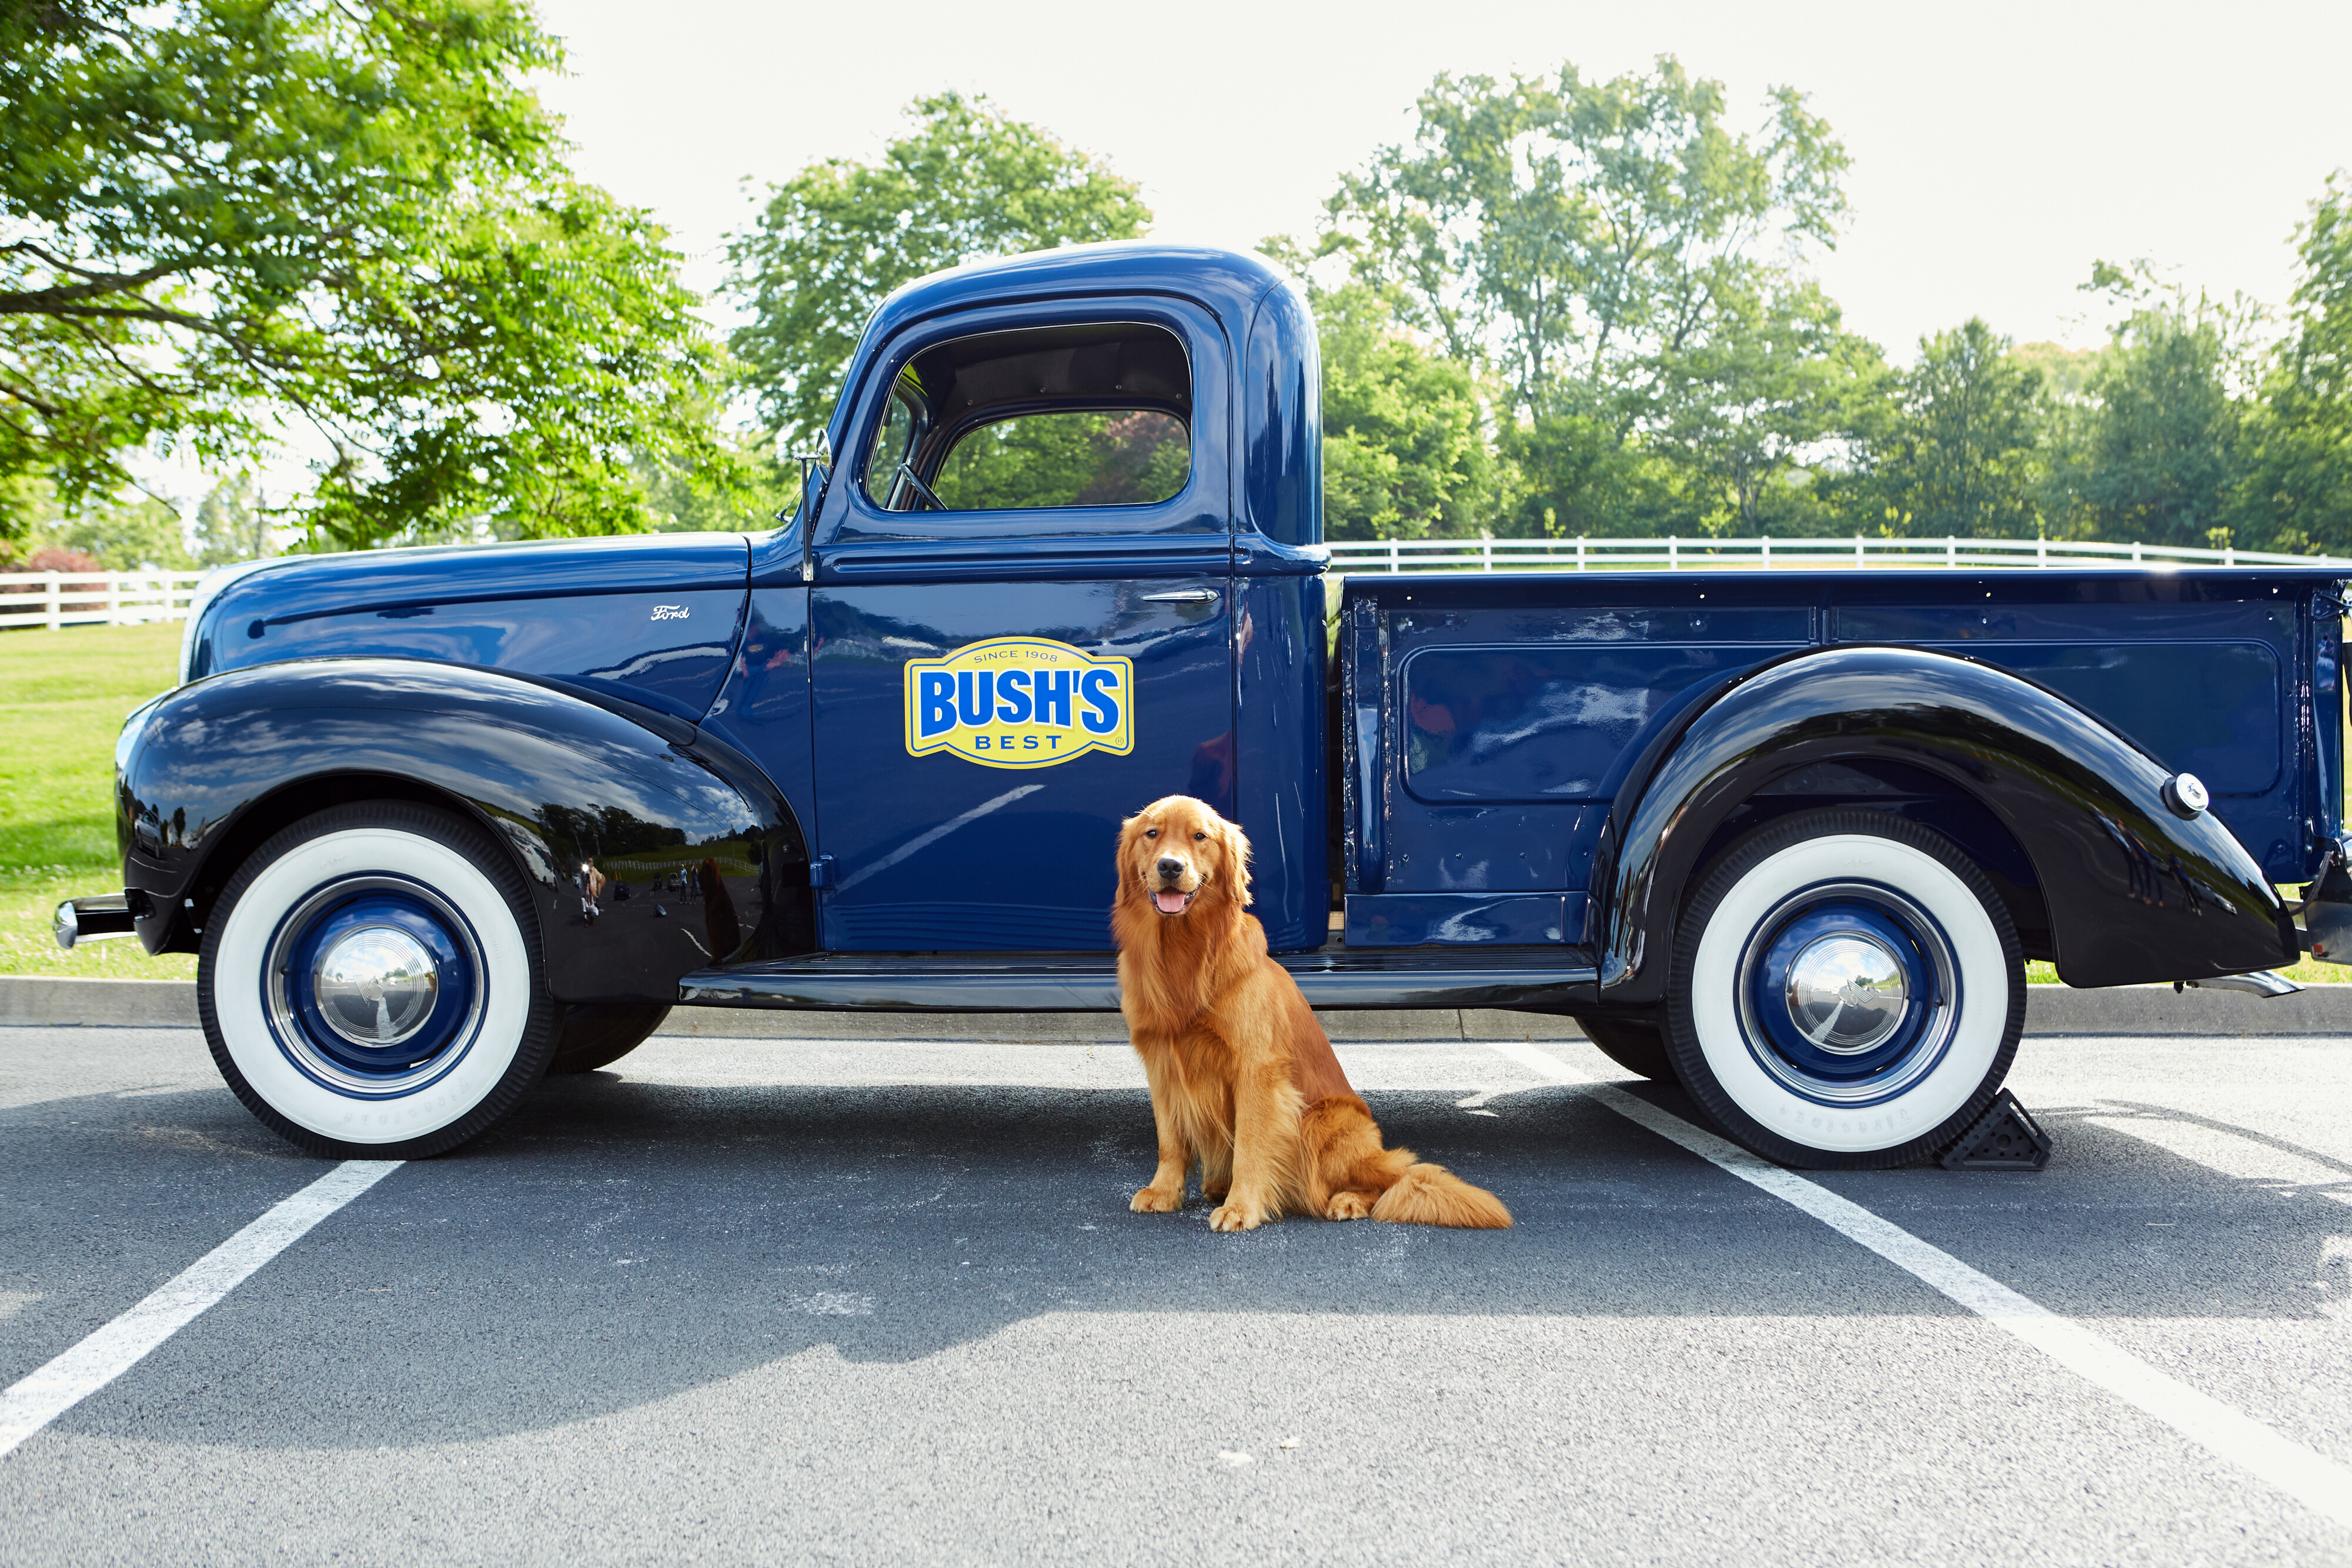 A golden retriever in front of a vintage pickup truck